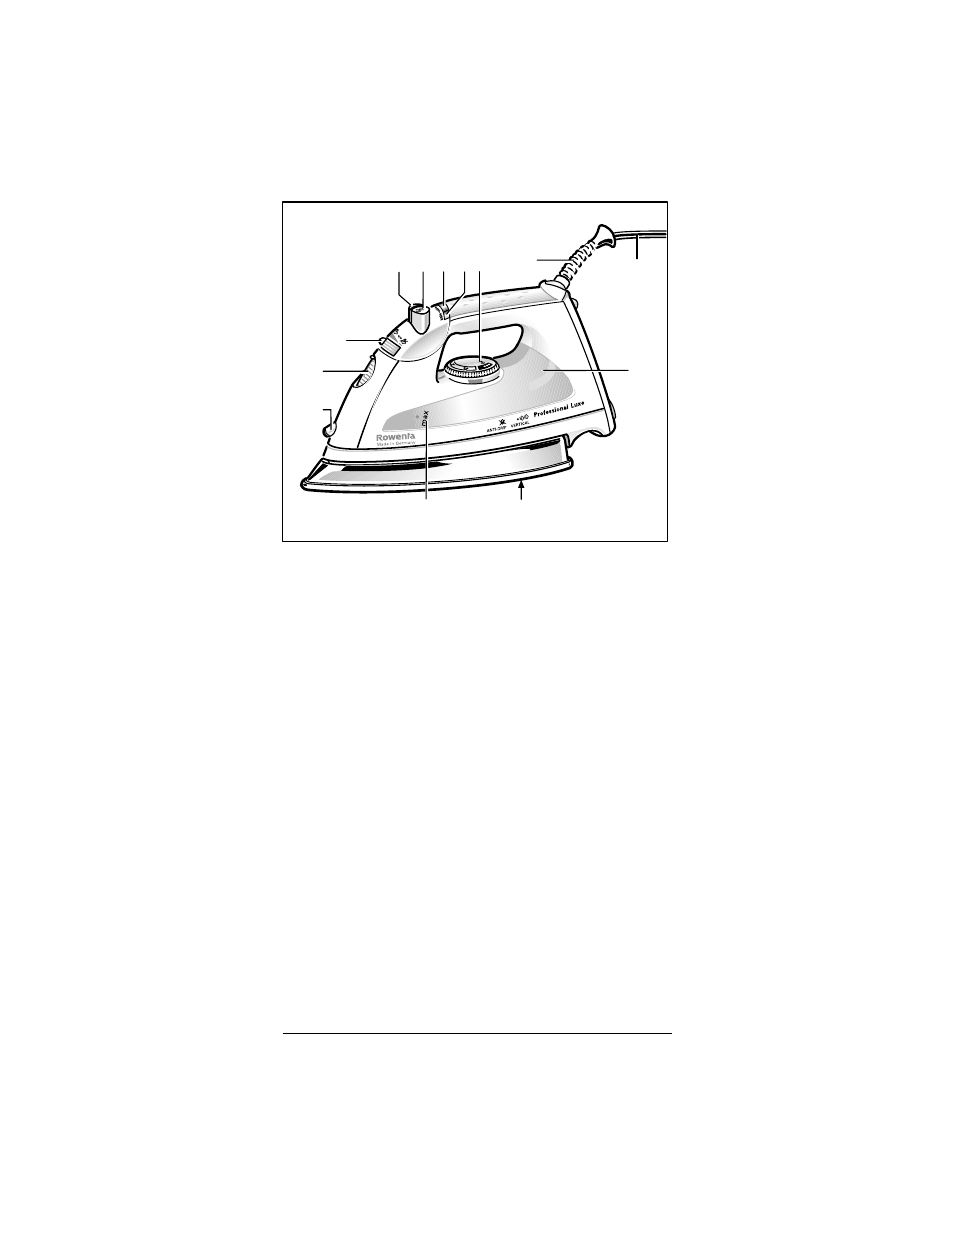 ROWENTA Professional Luxe Luxe Steam Iron User Manual